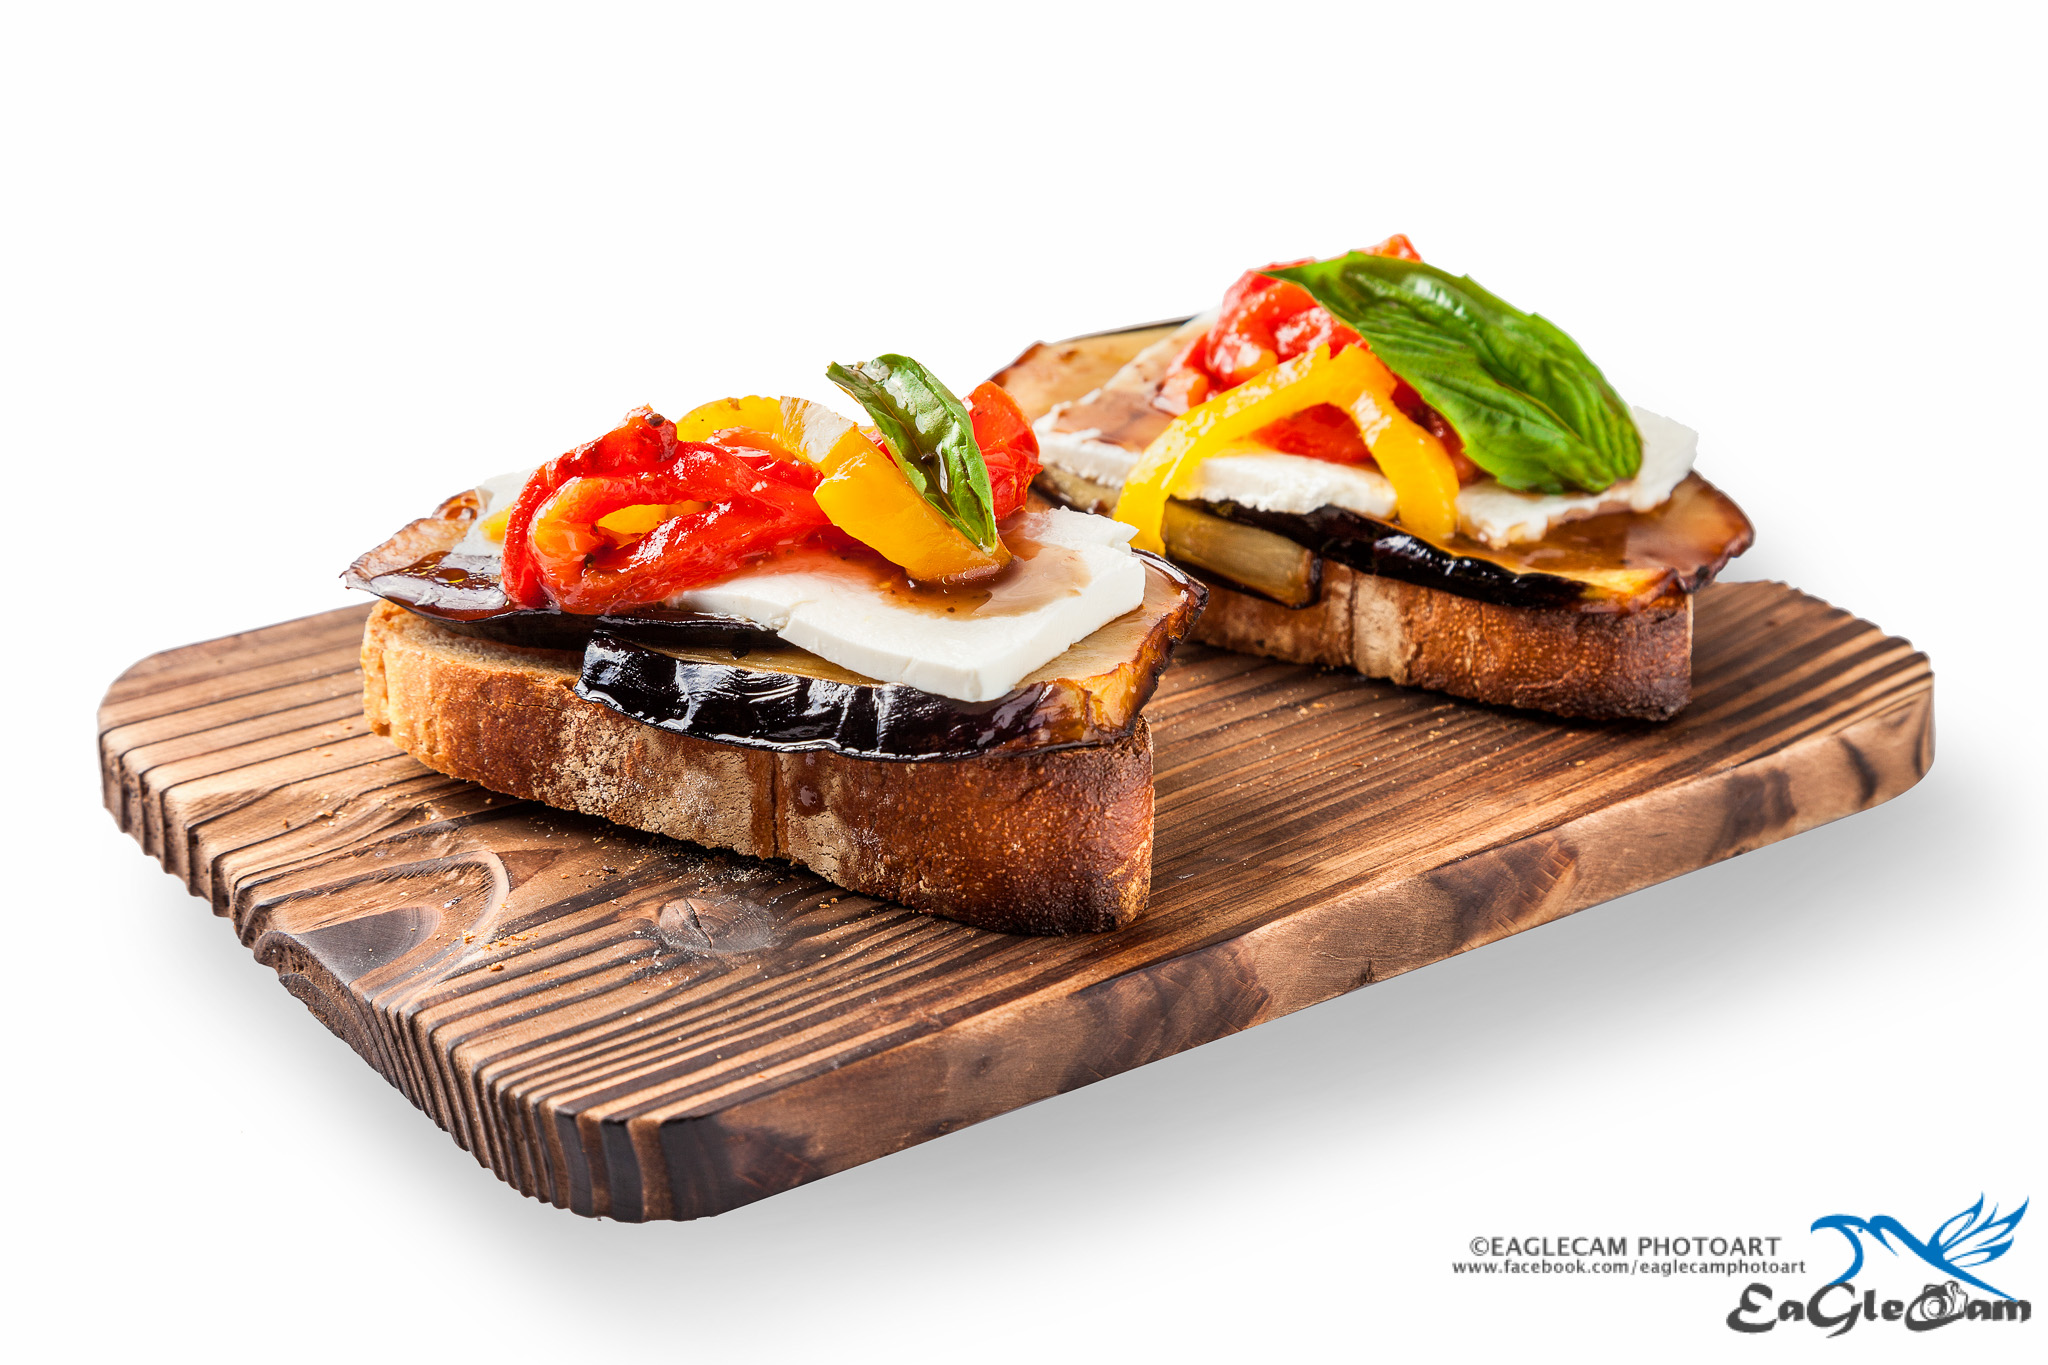 Food Photography #55